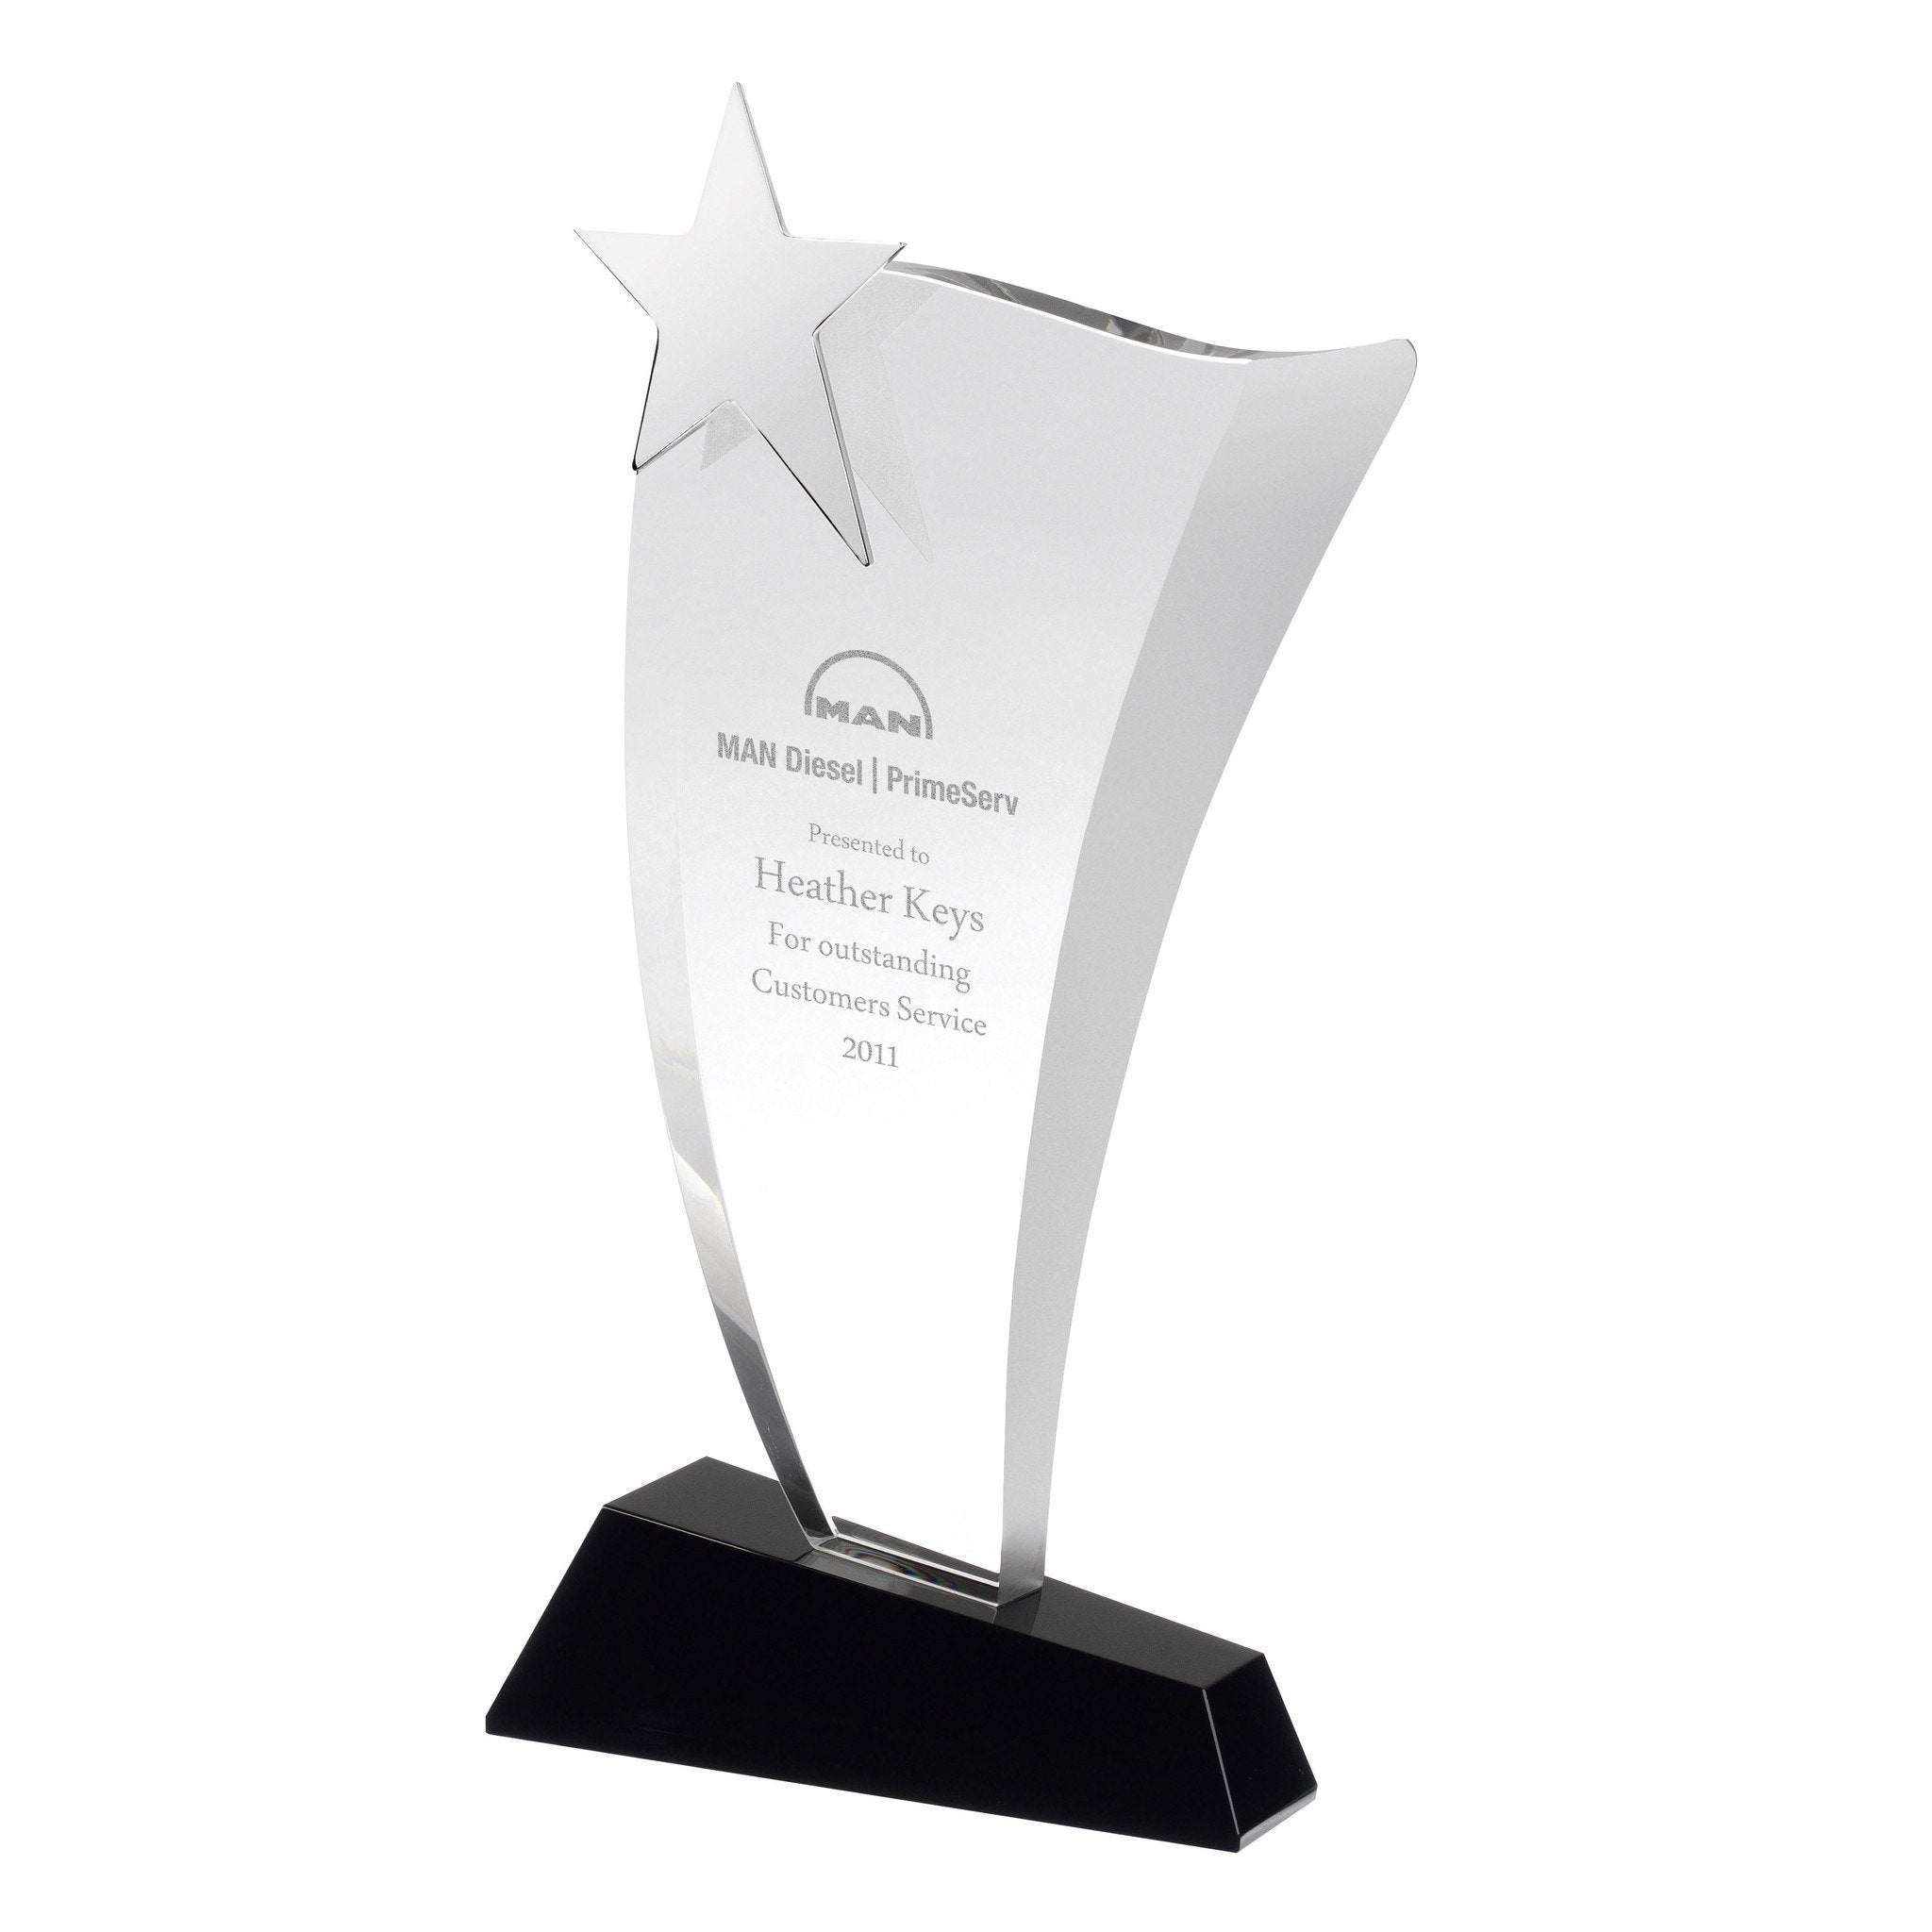 Swoop with Star Award Bespoke Acrylic Awards Creative Awards